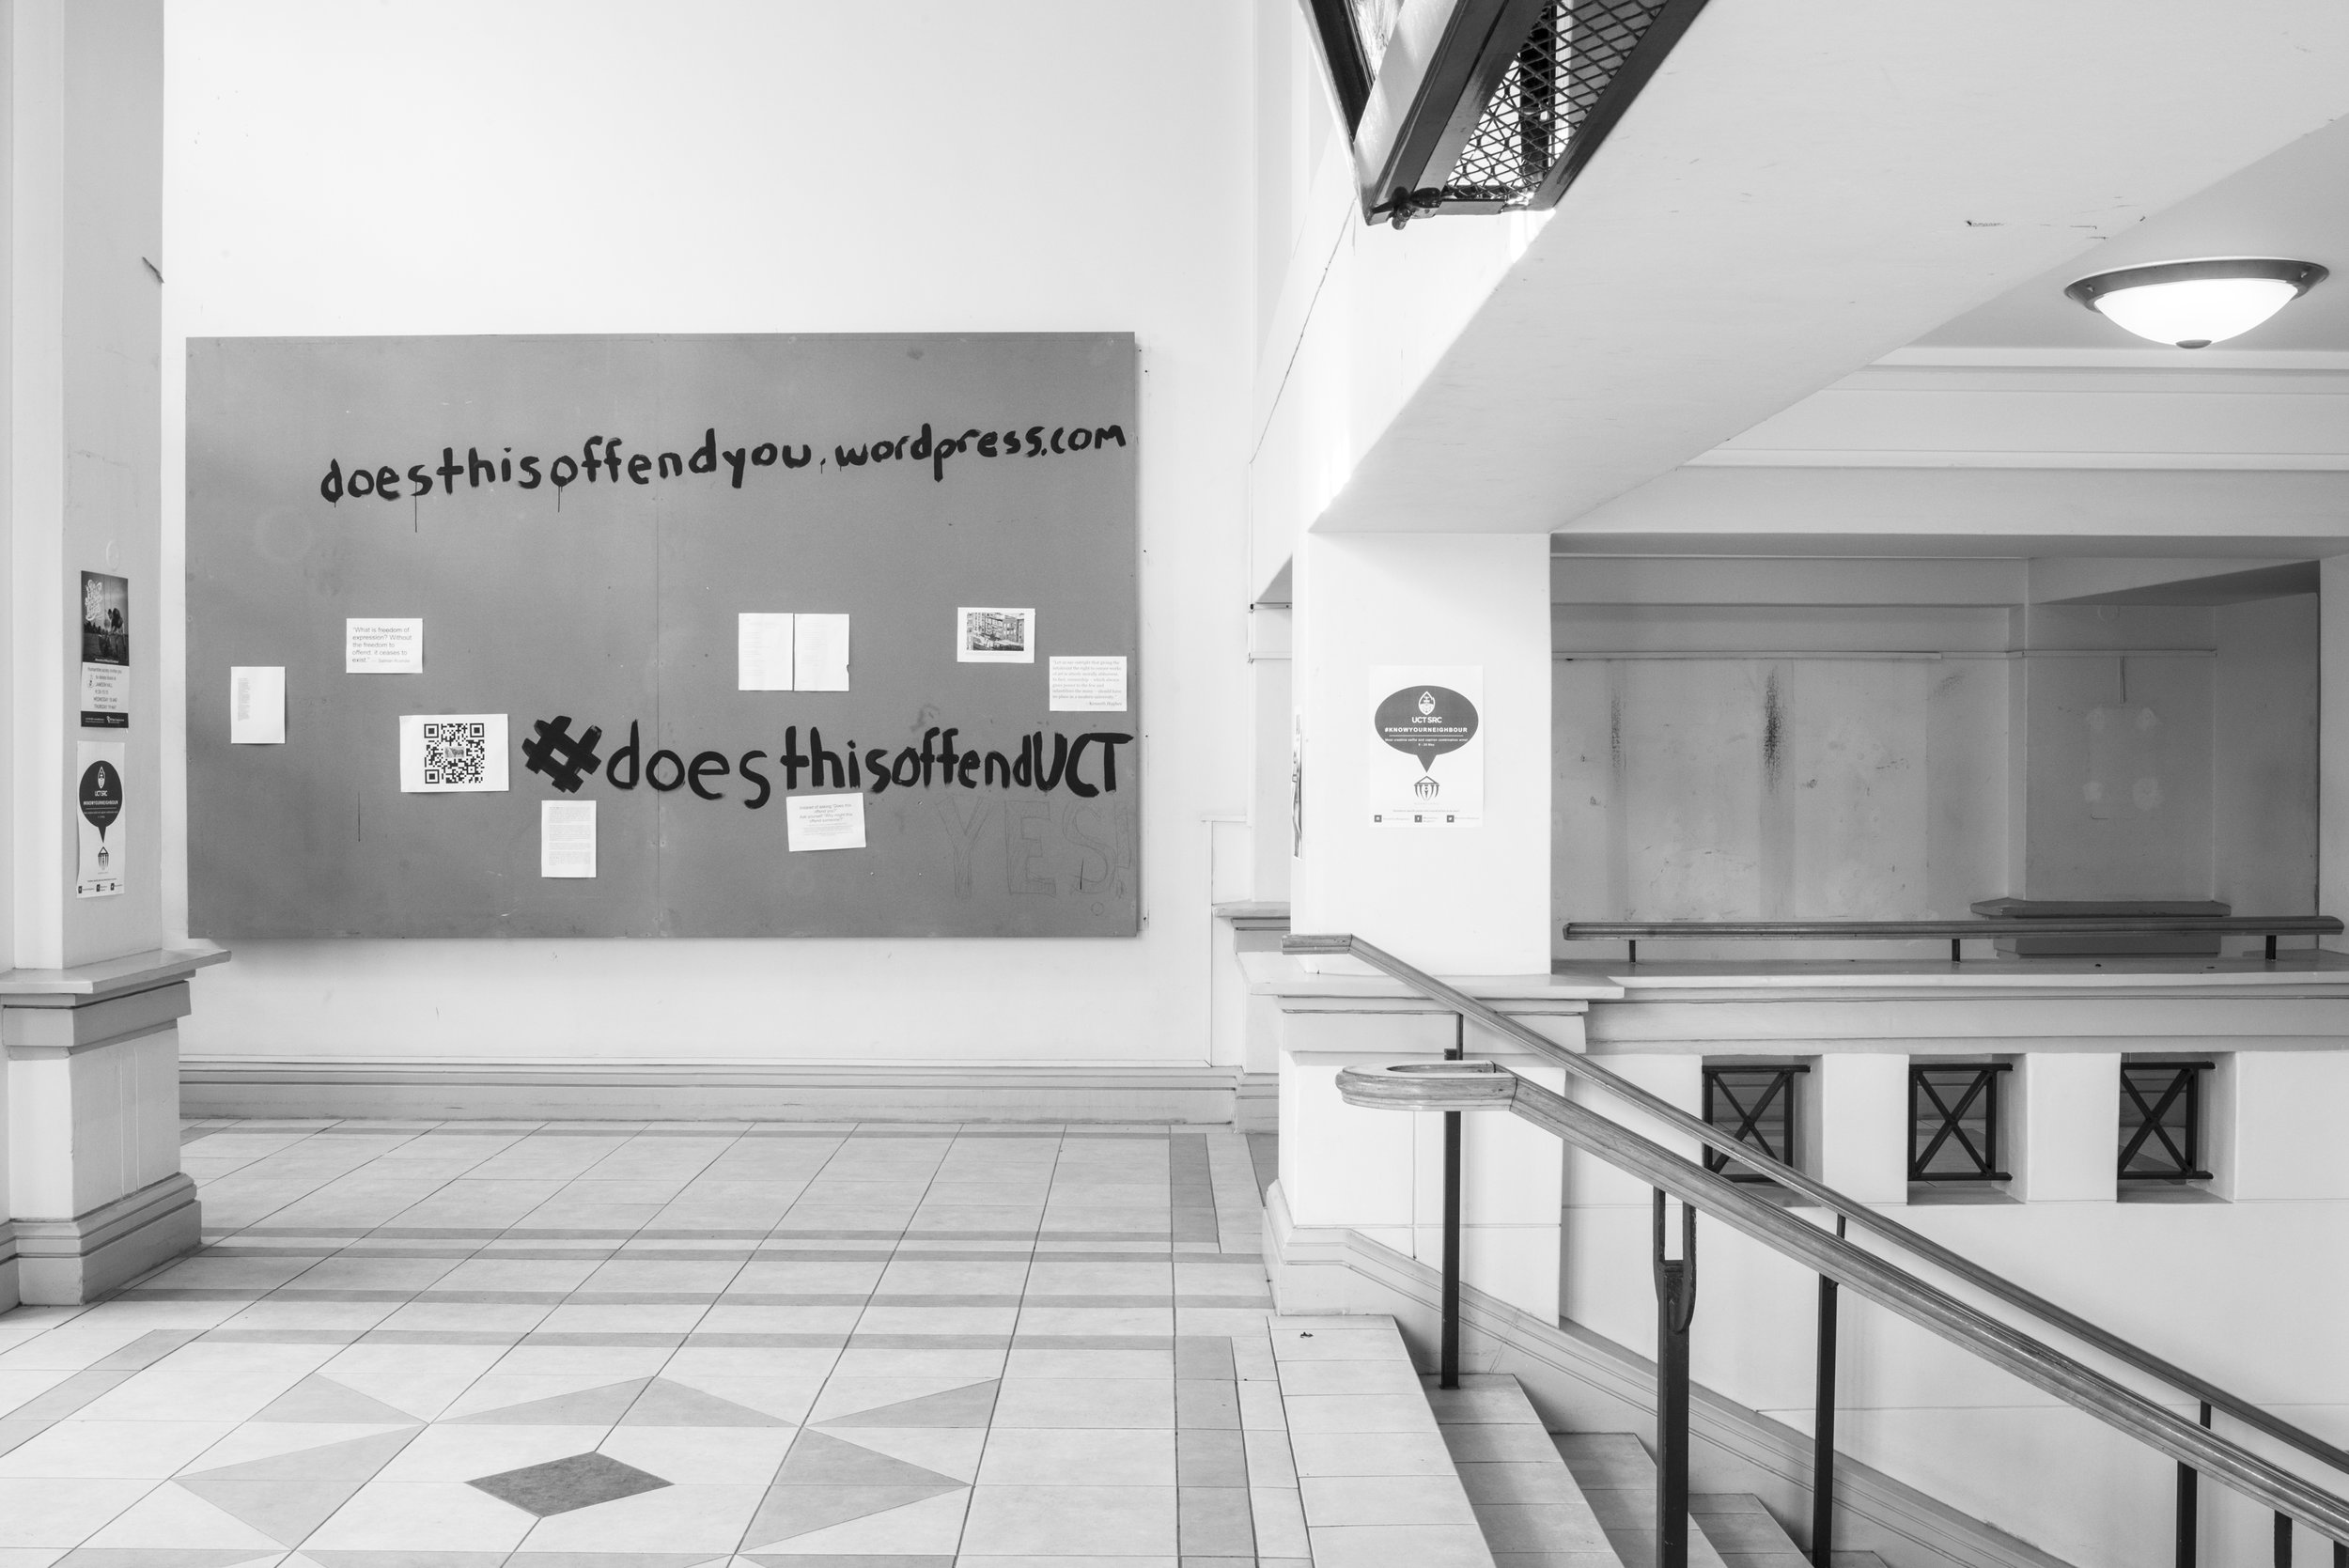 « Temporary » Censorship of its artworks by management of the University of CapeTown : at left a drawing by Diane Victor has been covered ; at right, woodcuts by Cecil Skotnes have been removed. University of Cape Town, 14 May 2016.  Digital print on gelatin silver paper, 29,5 x 44 cm. Courtesy David Goldblatt and Goodman Gallery Johannesburg and Cape Town. © David Goldblatt